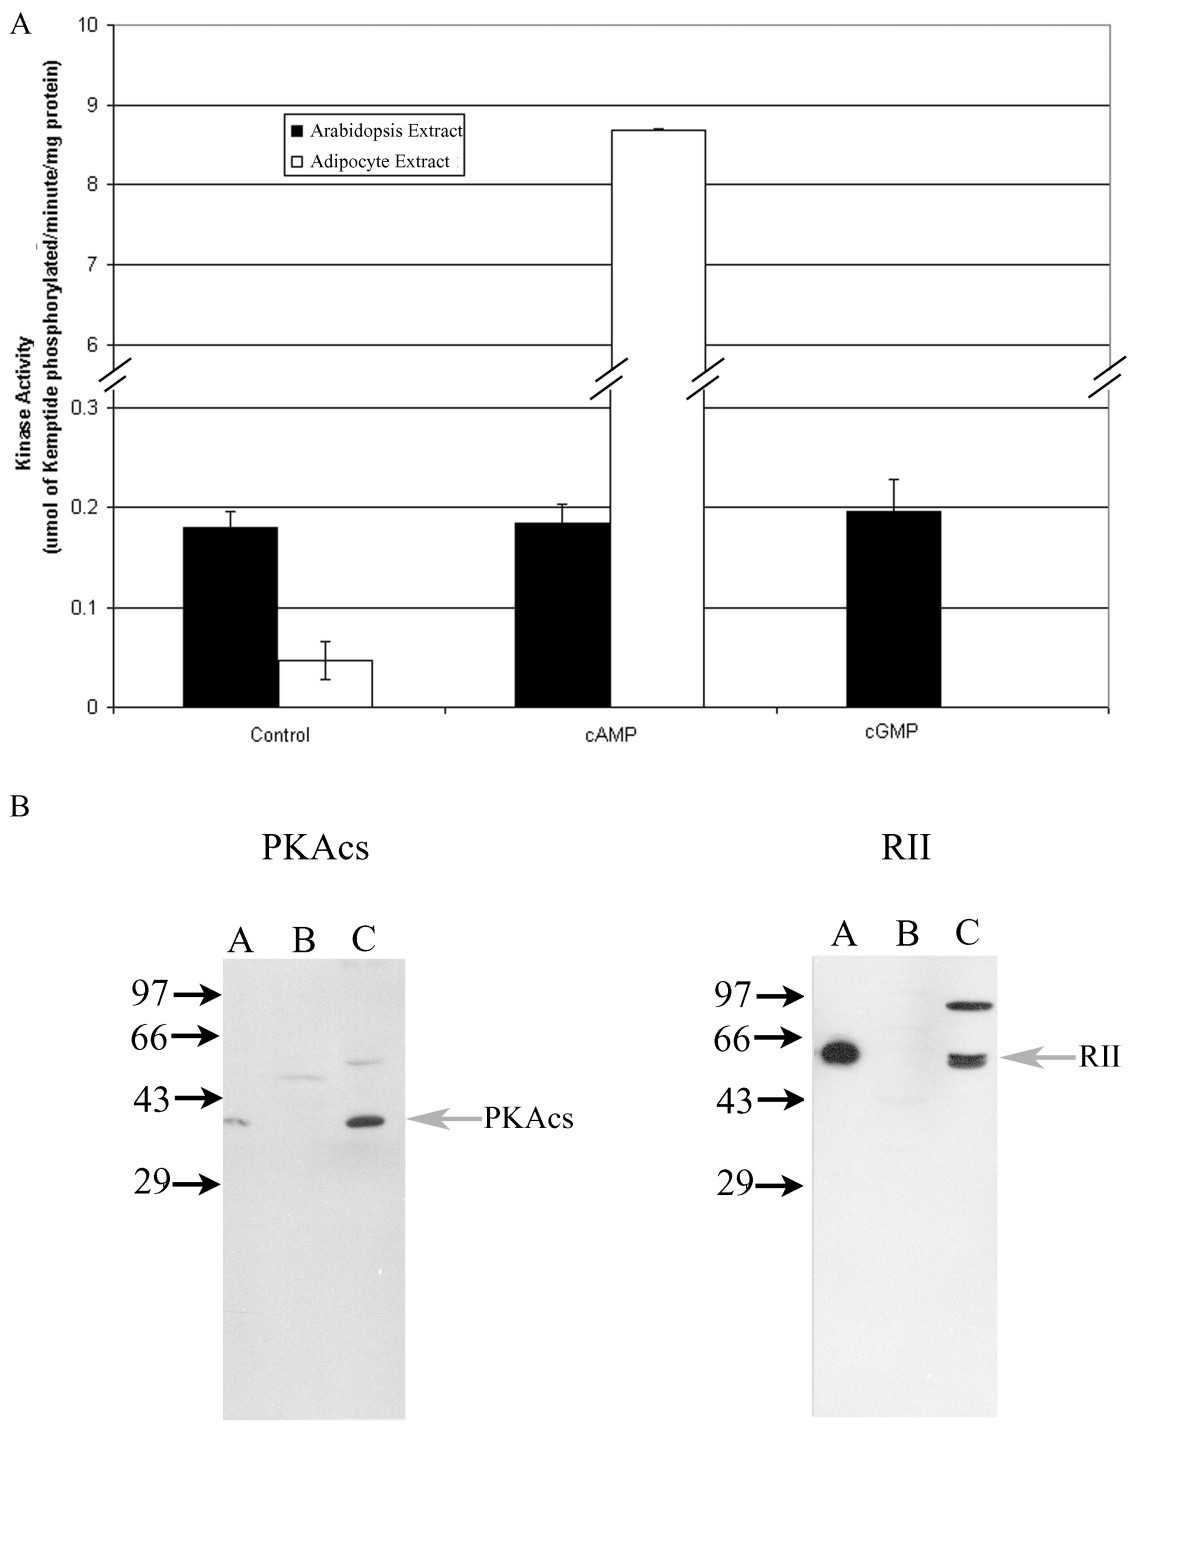 Cyclic Nucleotide Binding Proteins In The Arabidopsis Thaliana And Diagrams On Improperly Wiring Three Way Switches Eee Community Figure 4